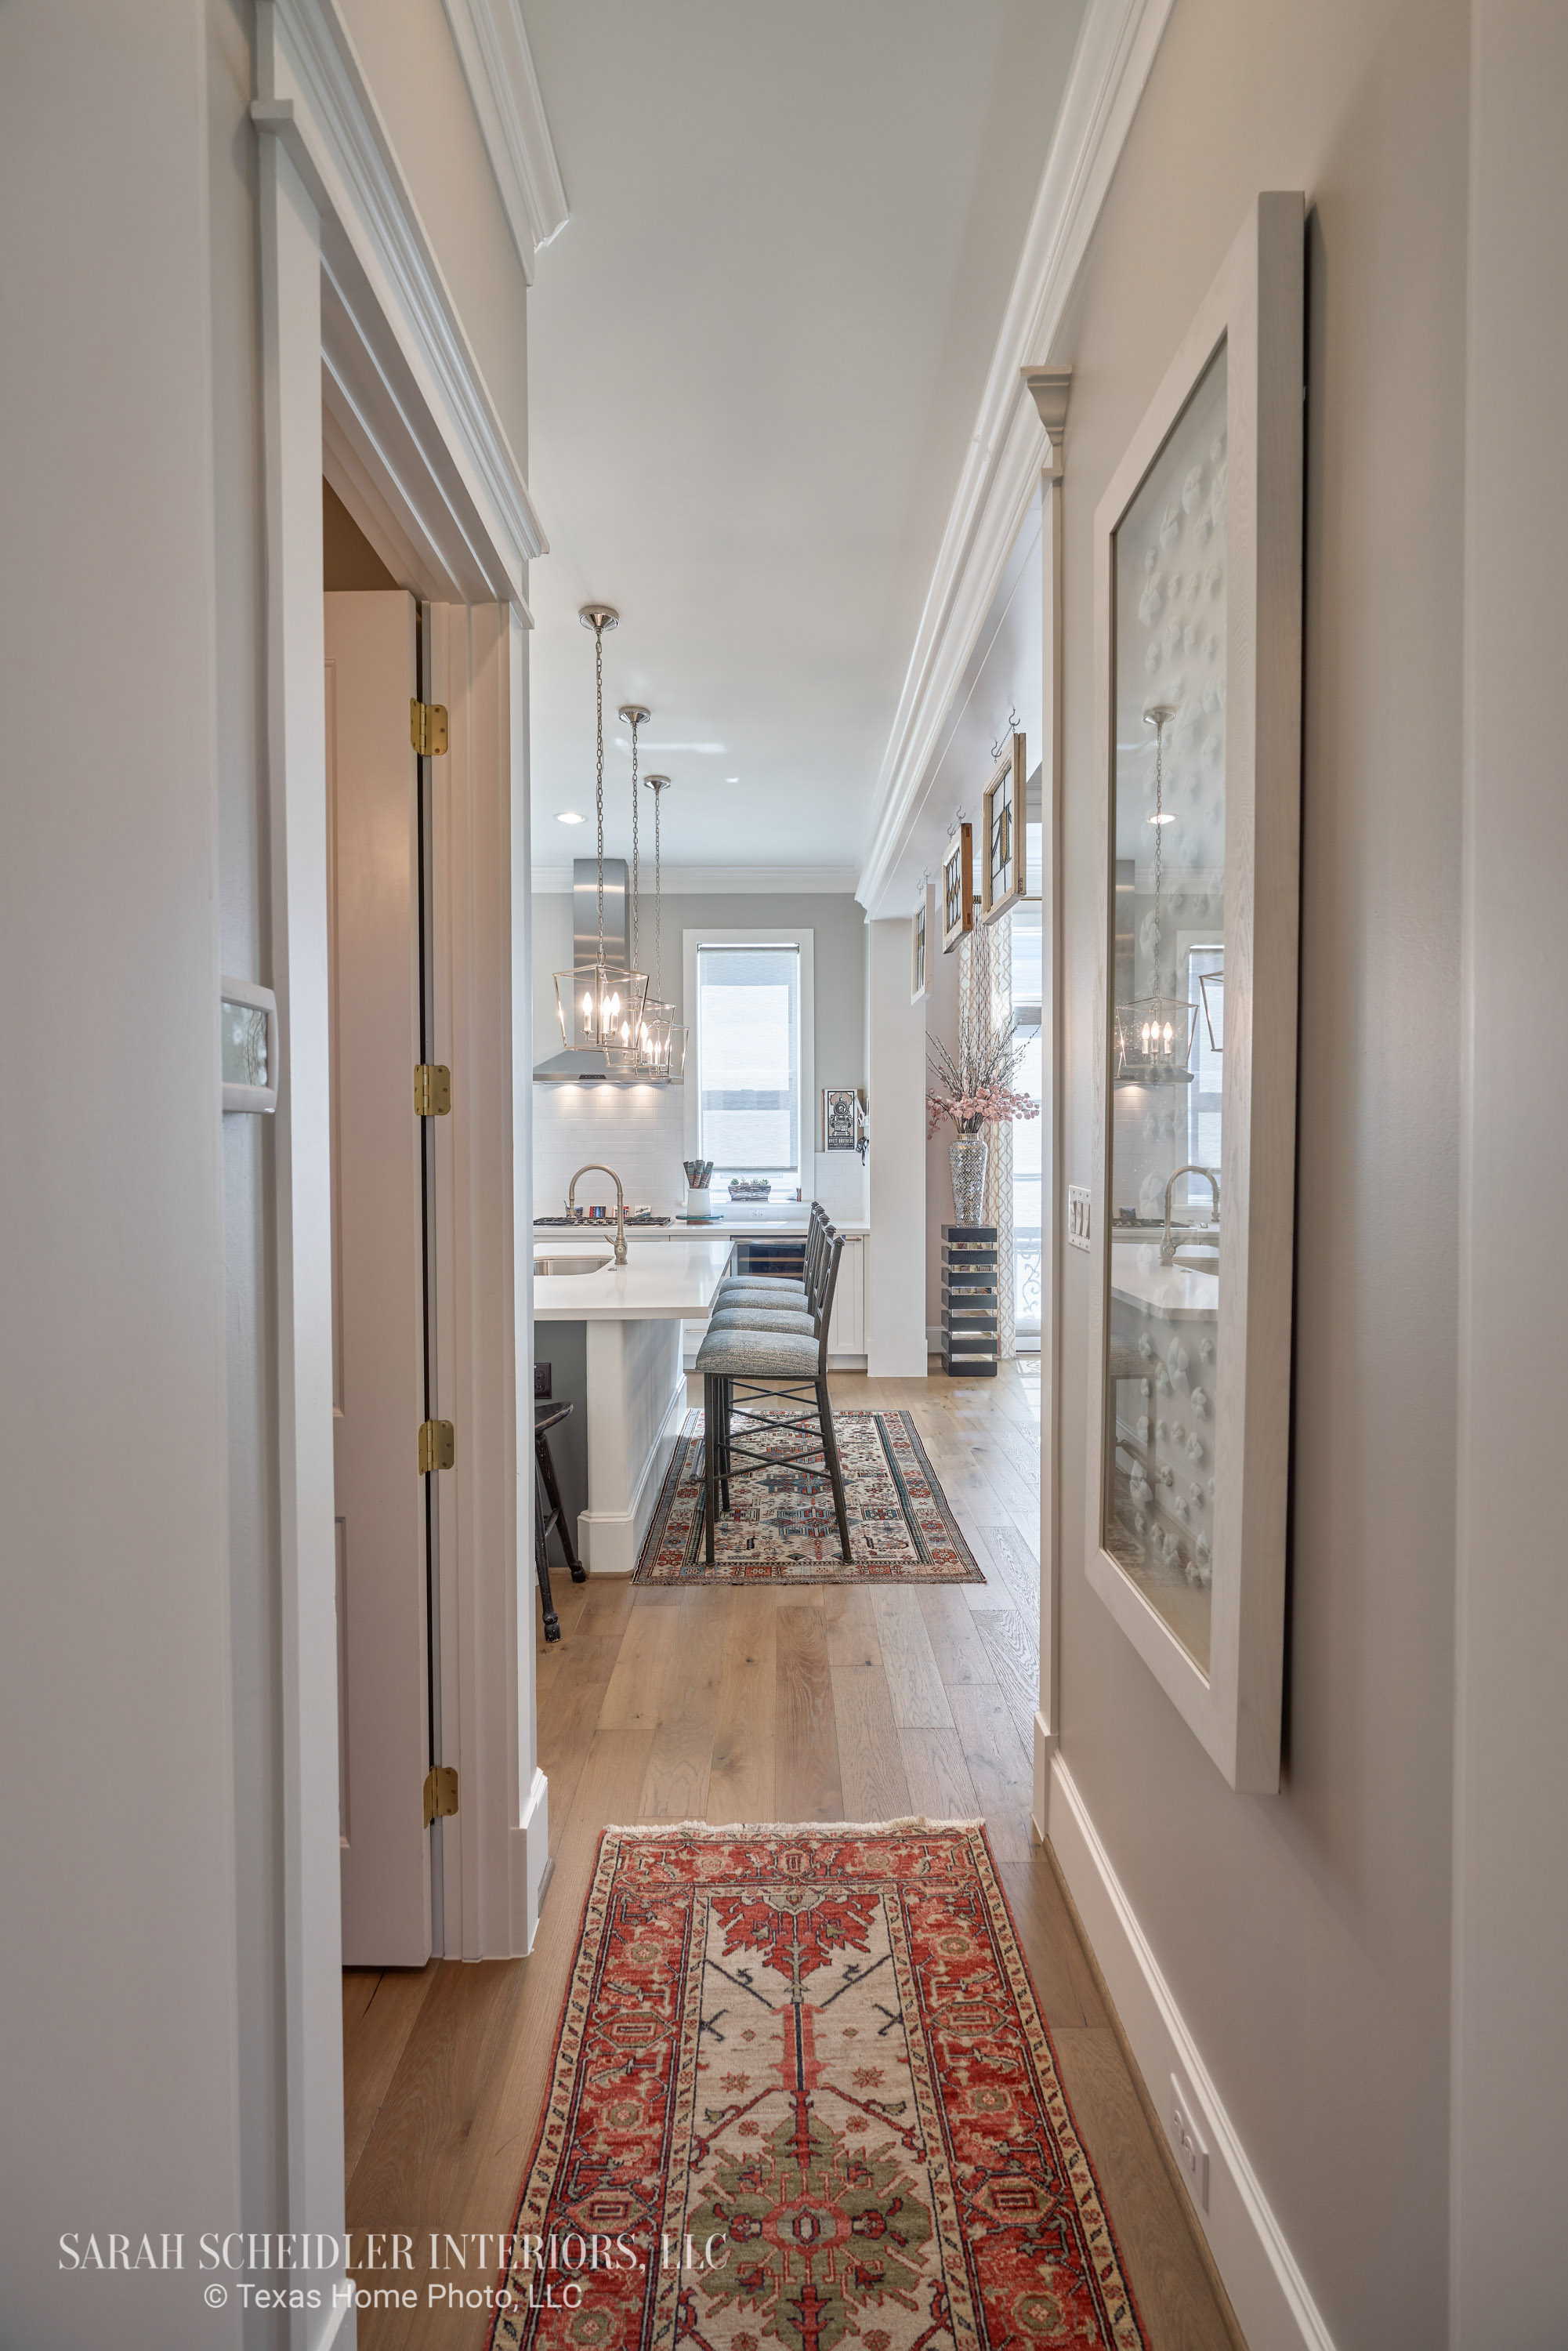 Hallway Design with Large-Scale Art Leading to White Open-Concept Kitchen